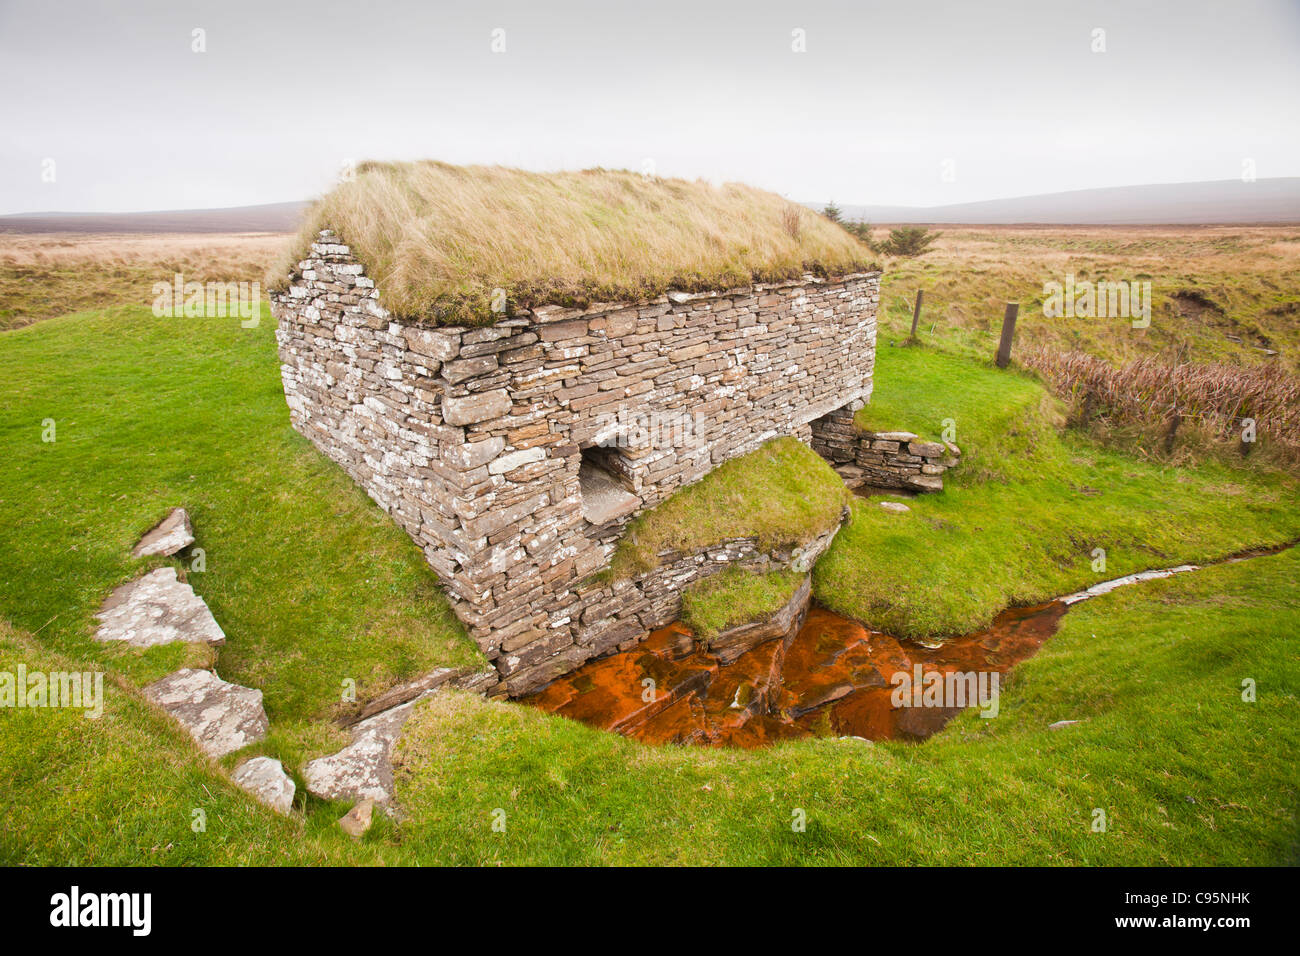 The Click Mill an ancient water mill for grinding grain on Orkney's Mainland, Scotland, UK. - Stock Image